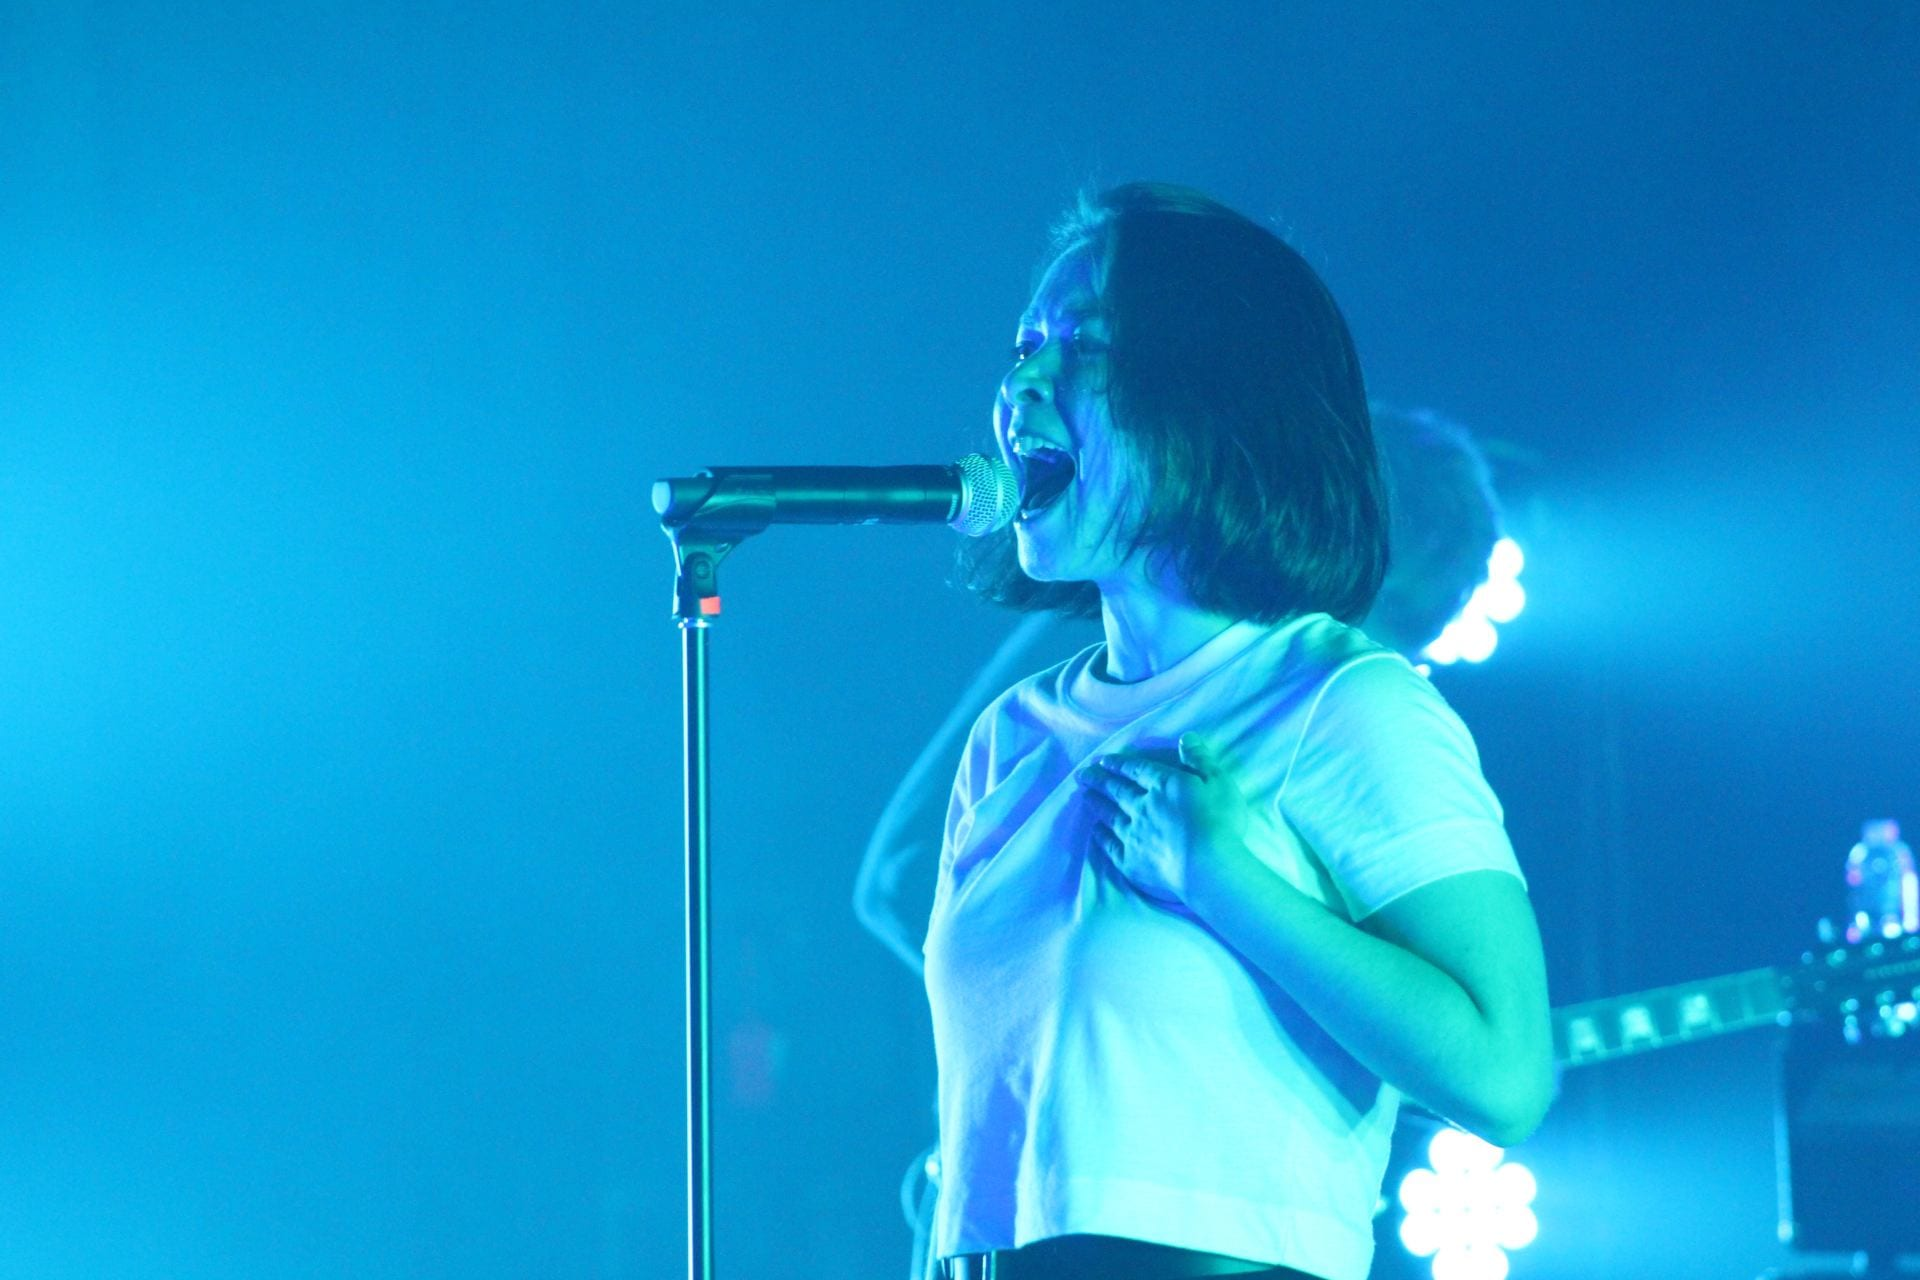 Concert Review Mitski Brings Her Lyrics To Life In Sold Out Columbus Show Venus, planet of love was destroyed by global warming did its people want too much too? concert review mitski brings her